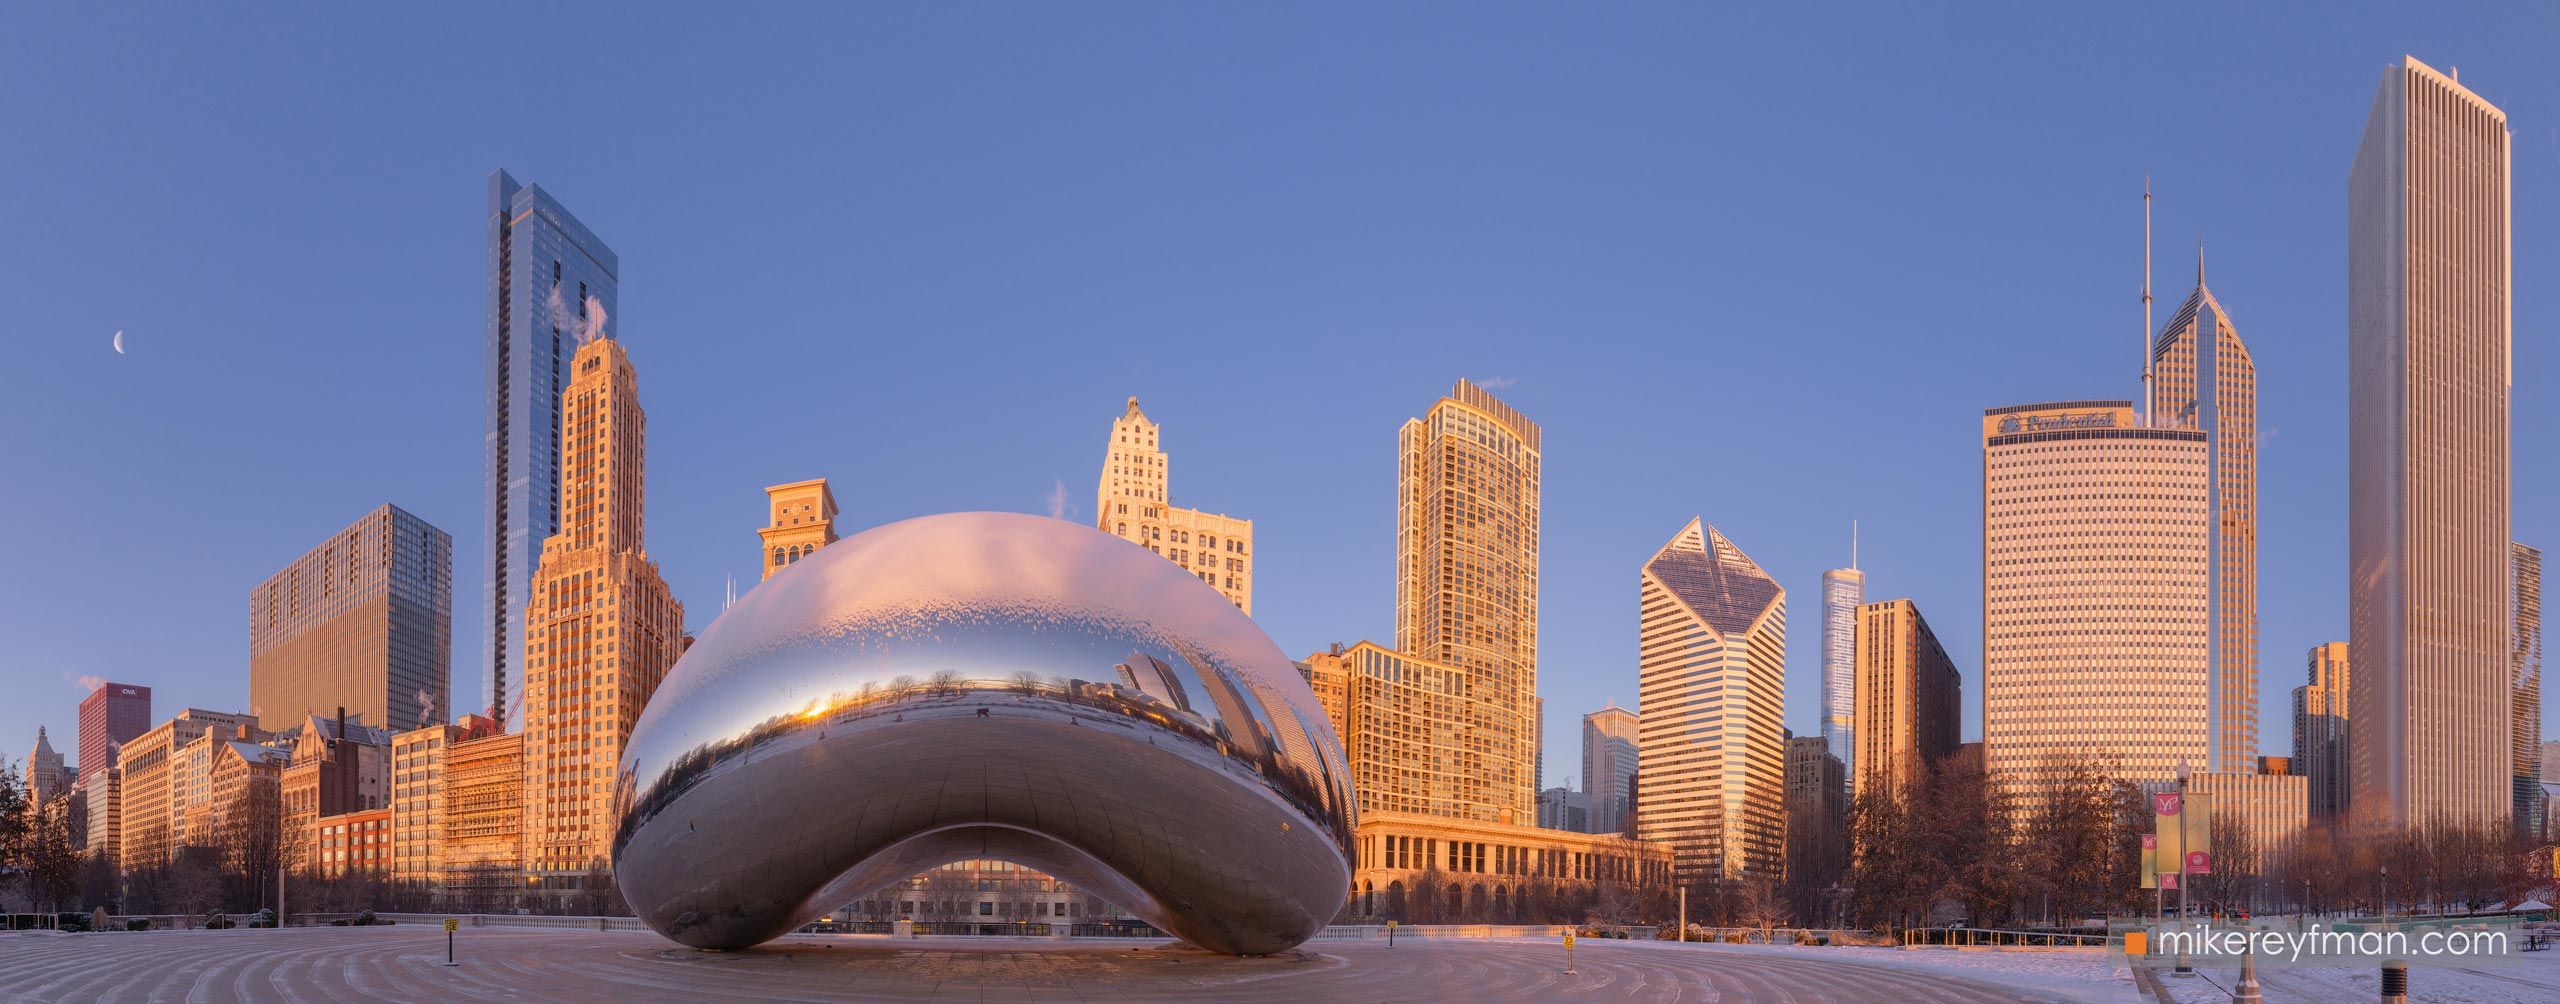 "Cloud Gate - ""The Bean"". Millennium Park, Chicago, Illinois, USA 101-CH1-D8C8239_Pano_1x2.55 - Chicago, USA: The"